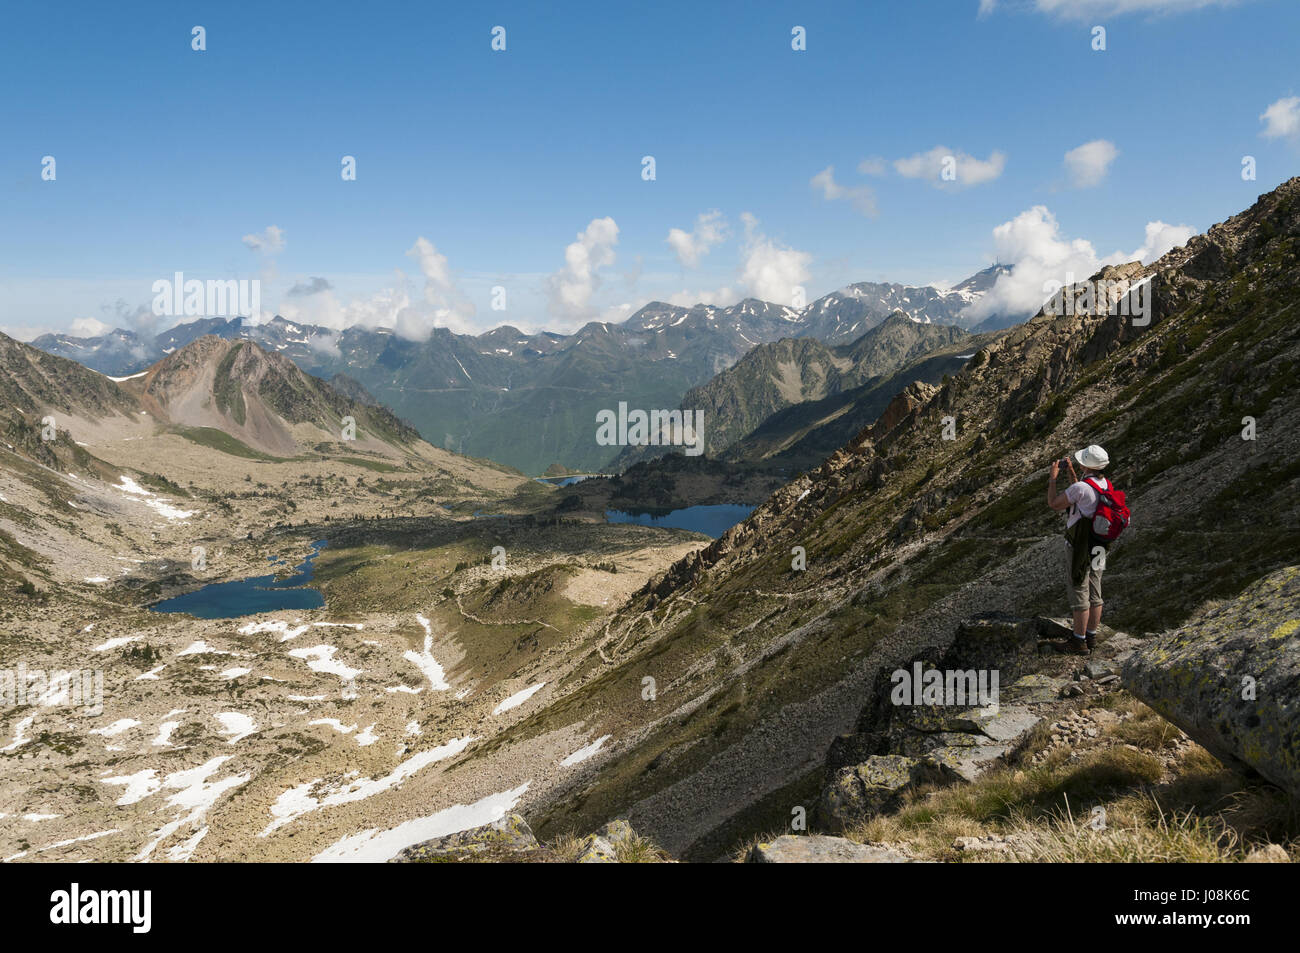 France, Pyrenees, Neouvielle Natural Reserve, landscape with hiker - Stock Image